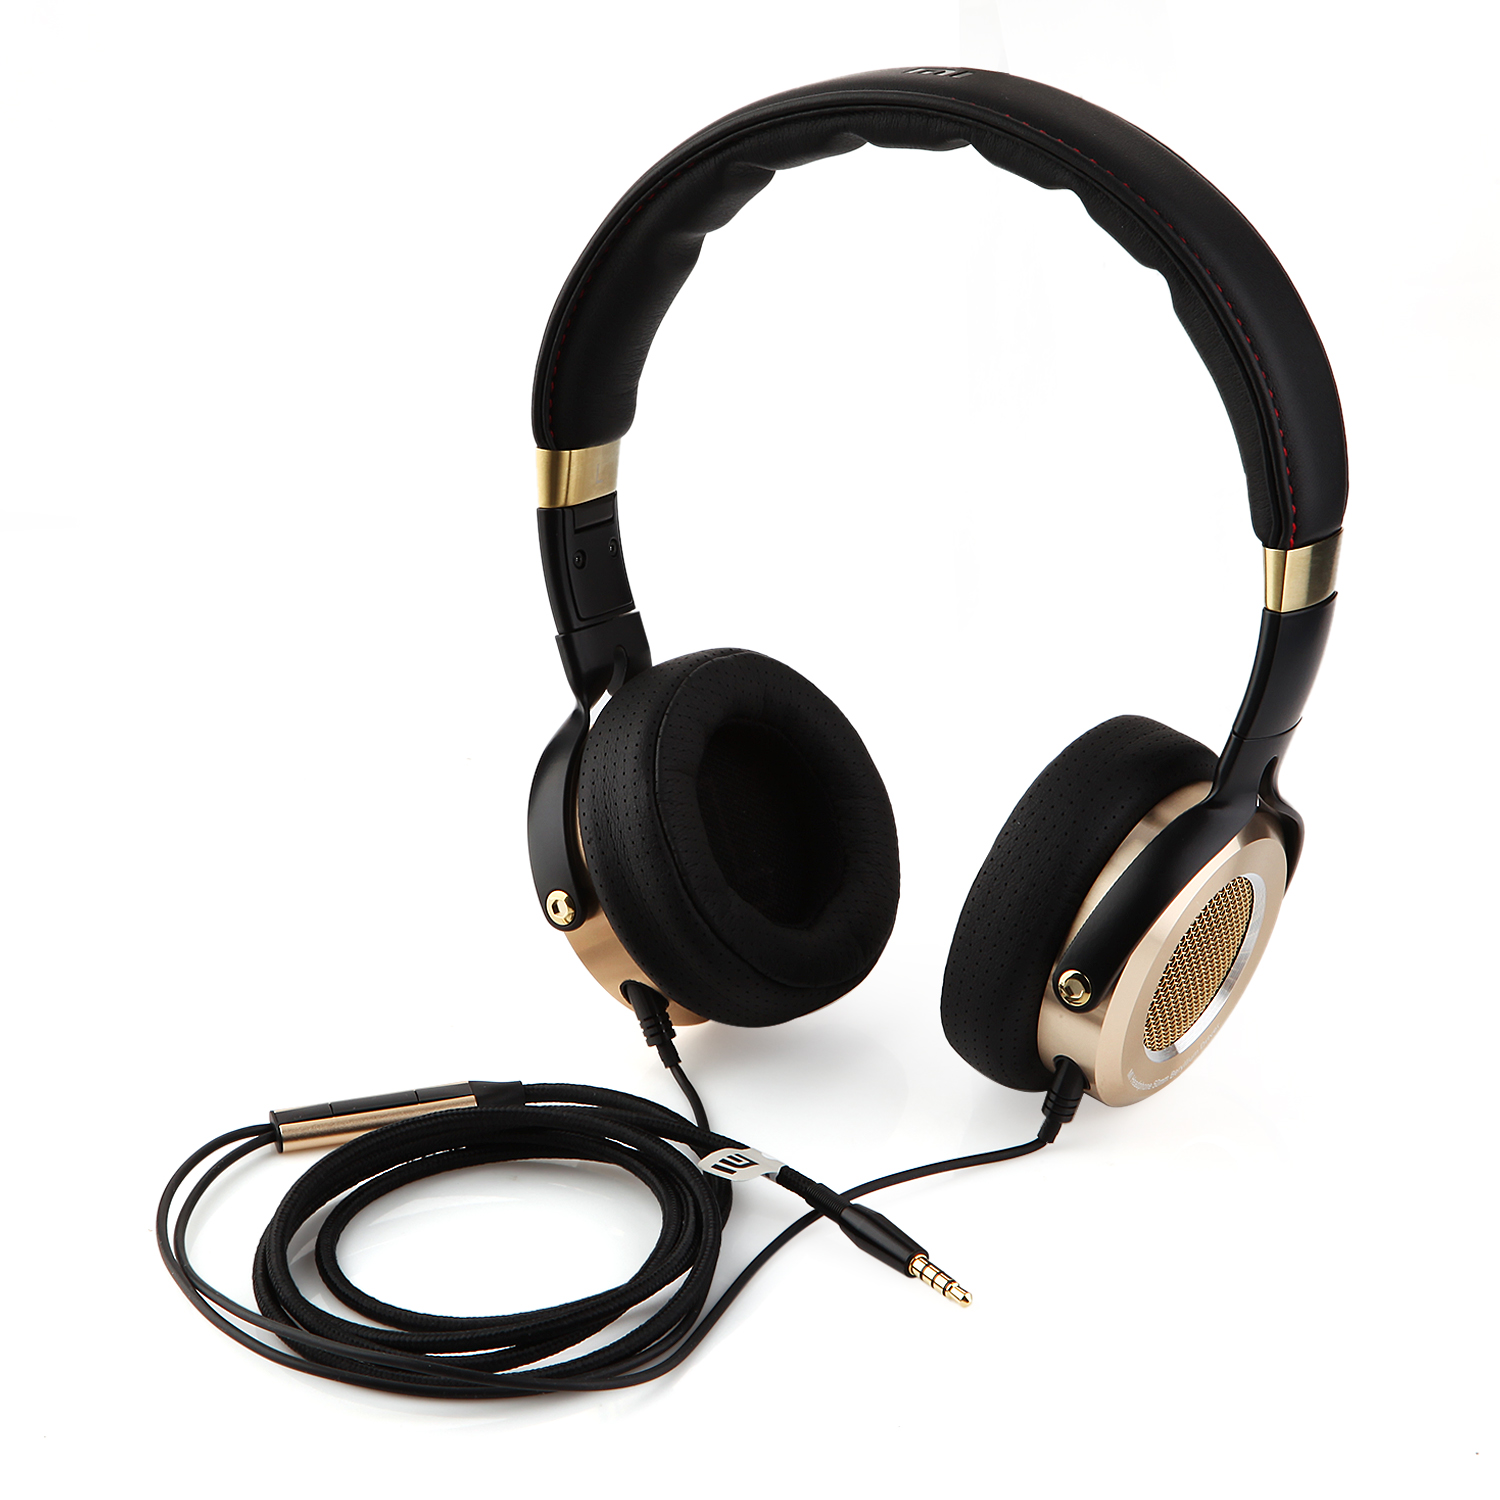 Original XIAOMI MI Headphone HiFi Headset Stereo Earphone with Mic for Phone PC